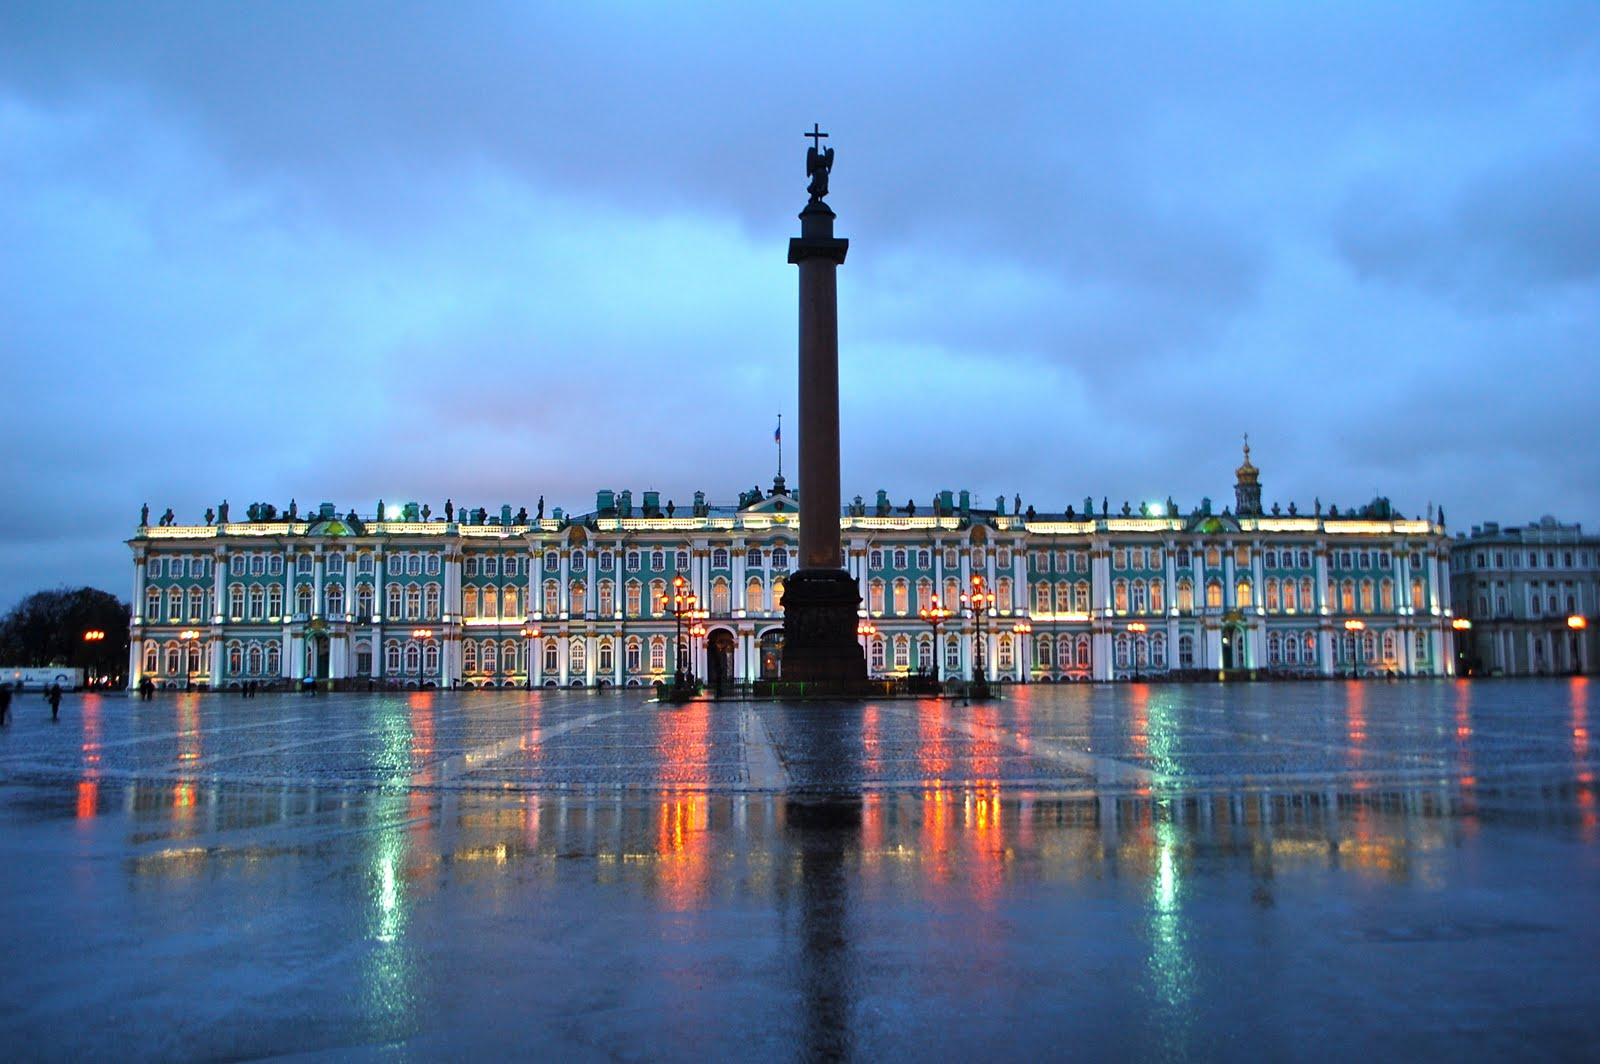 St petersburg - baltic yacht charter vacations in luxury and style